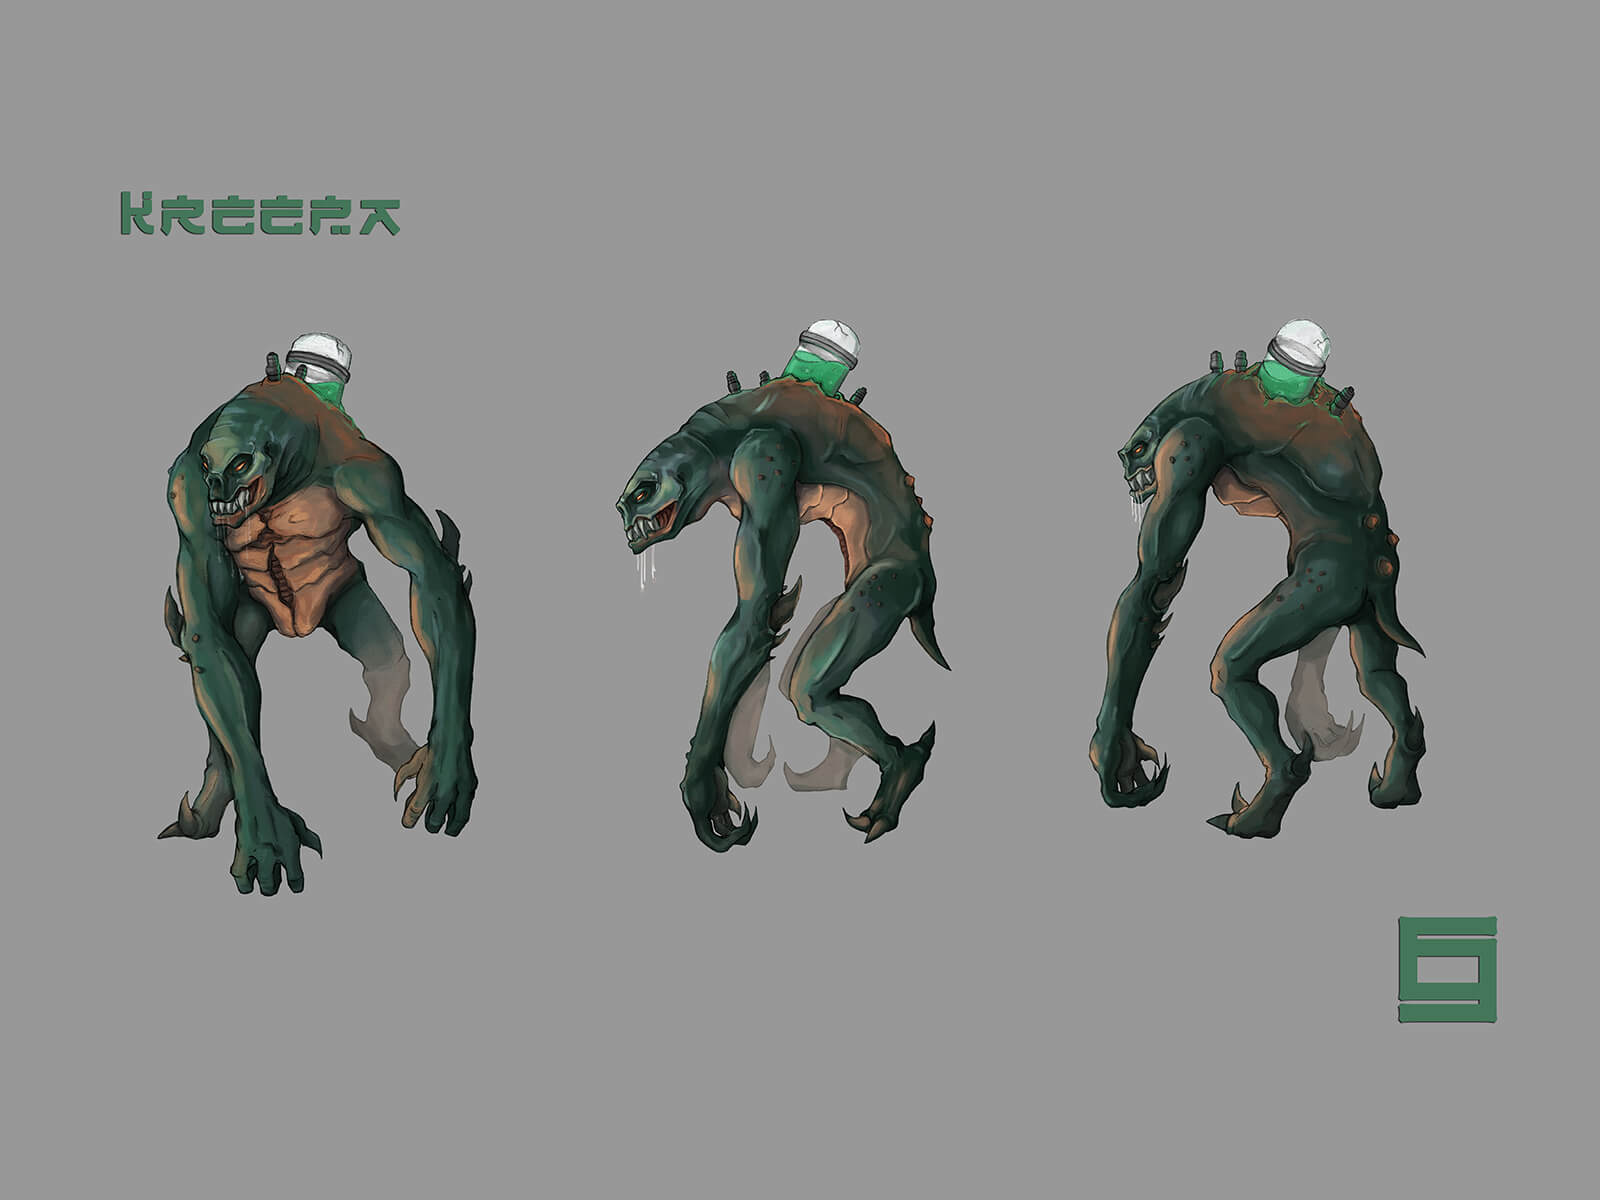 Concept art turnaround of a green lizard-like monster standing partly upright with a jar of green goo jutting from its back.